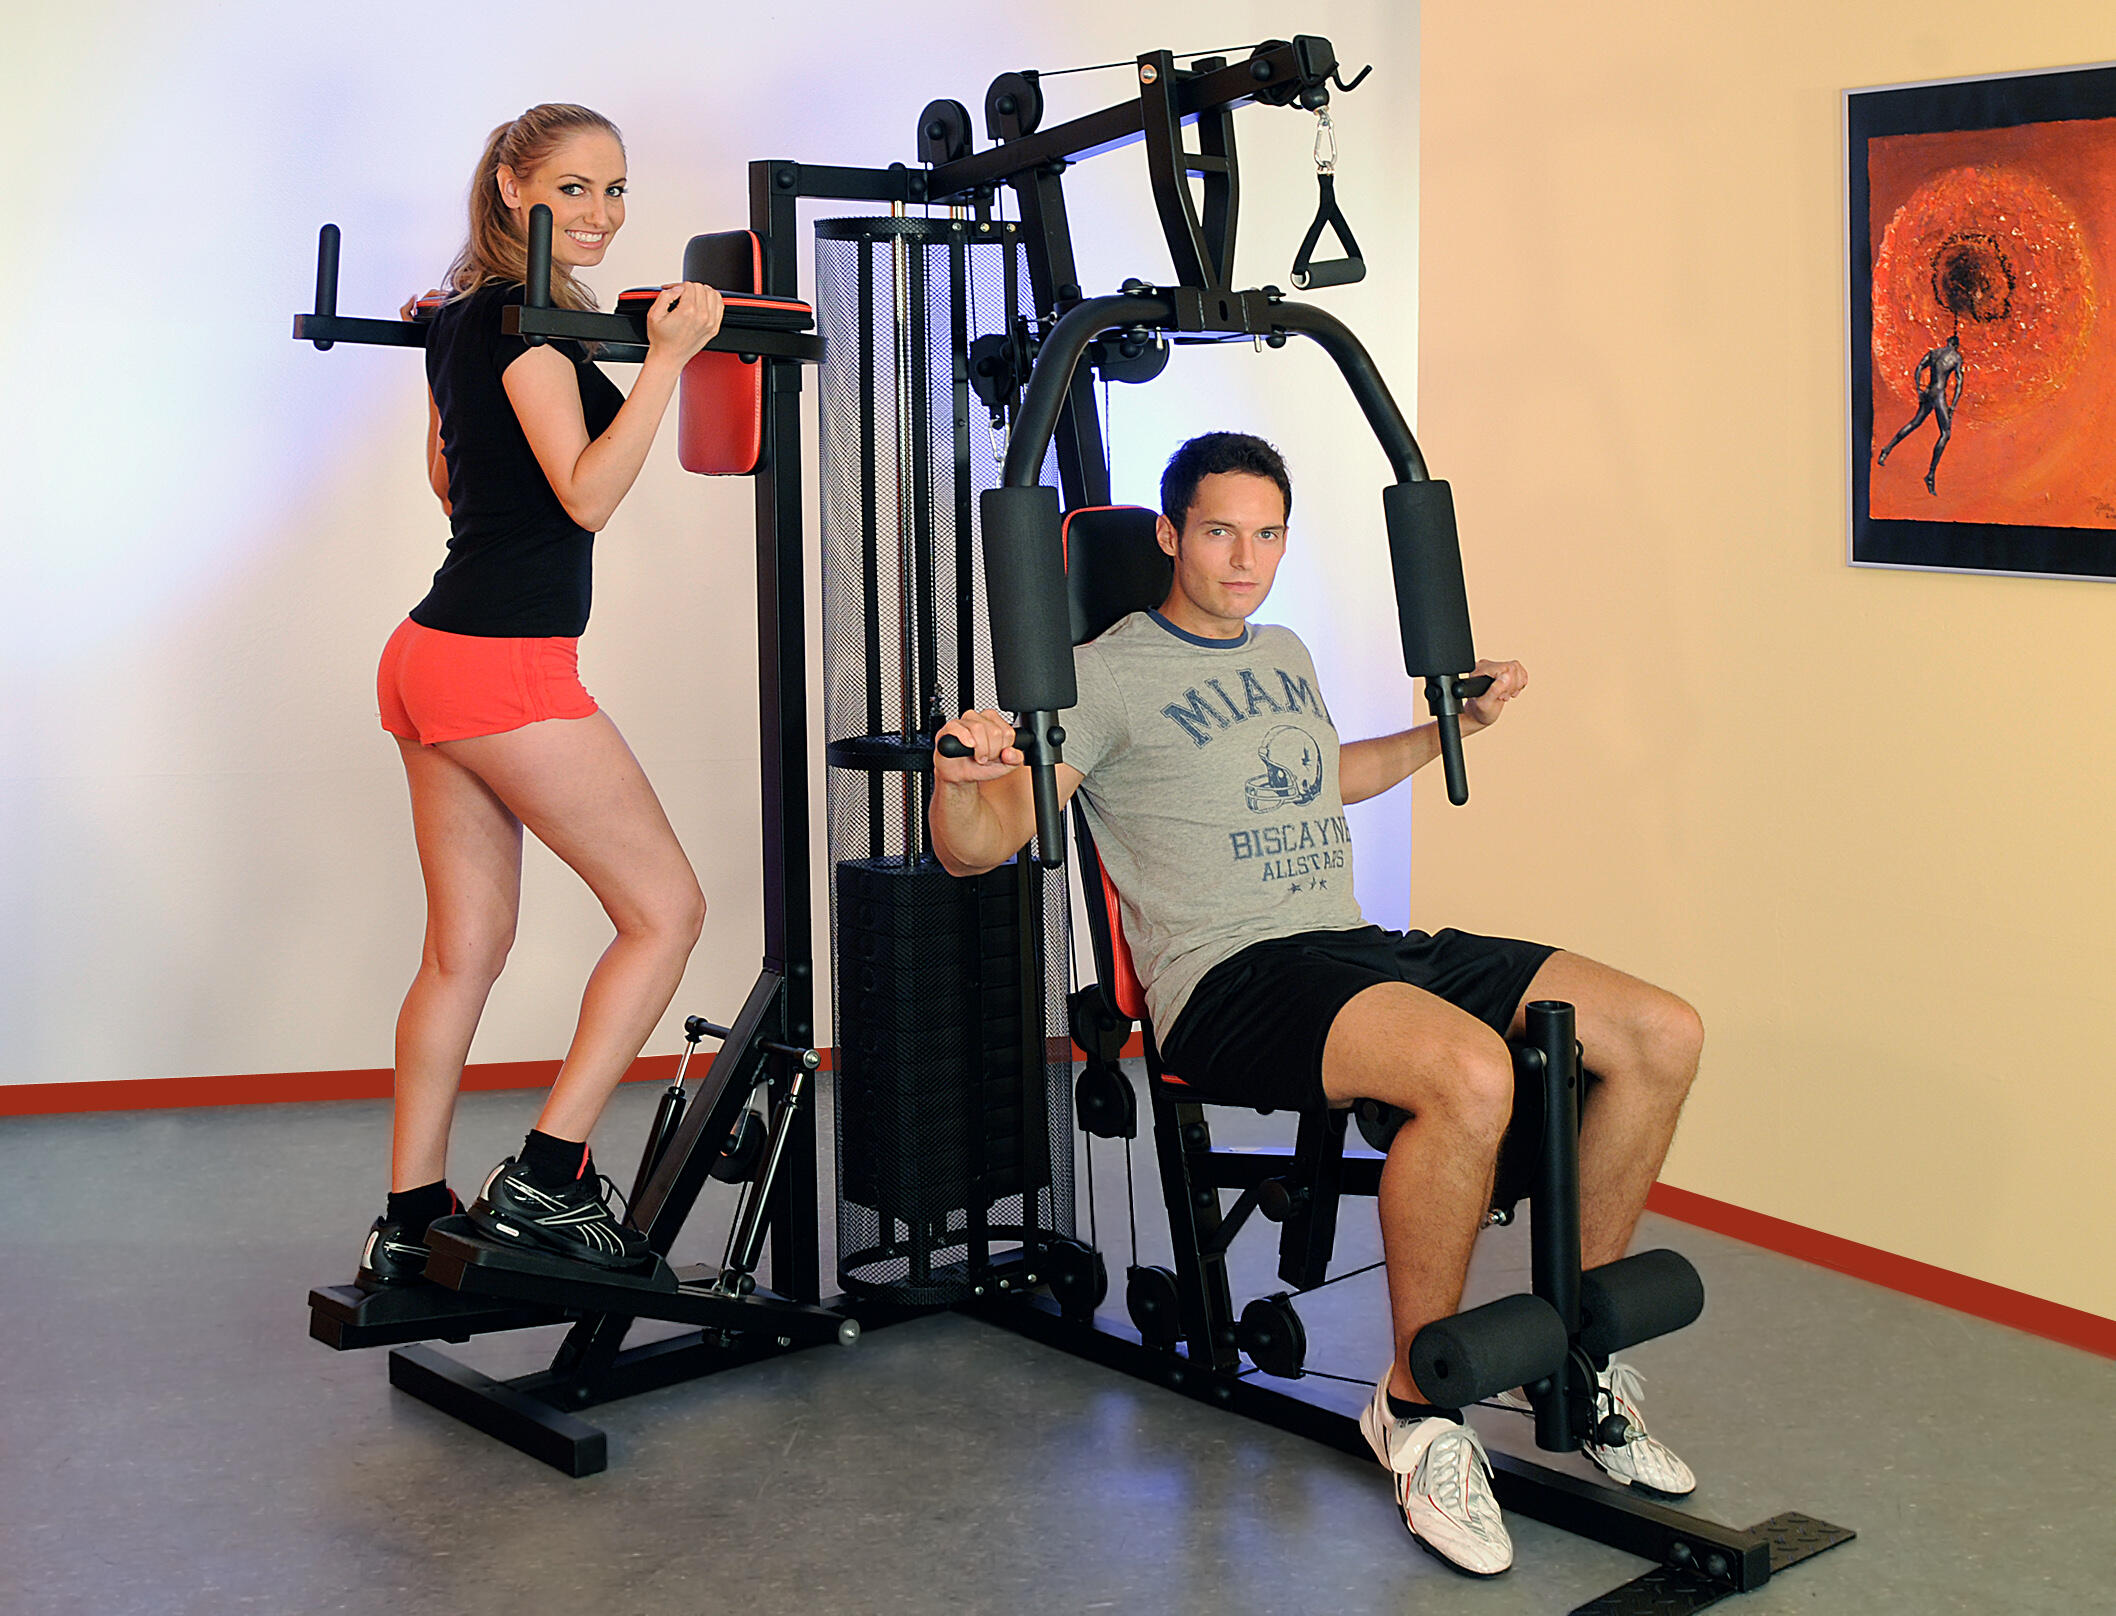 Aparat Multifunctional Fitness Profi Center de Luxe